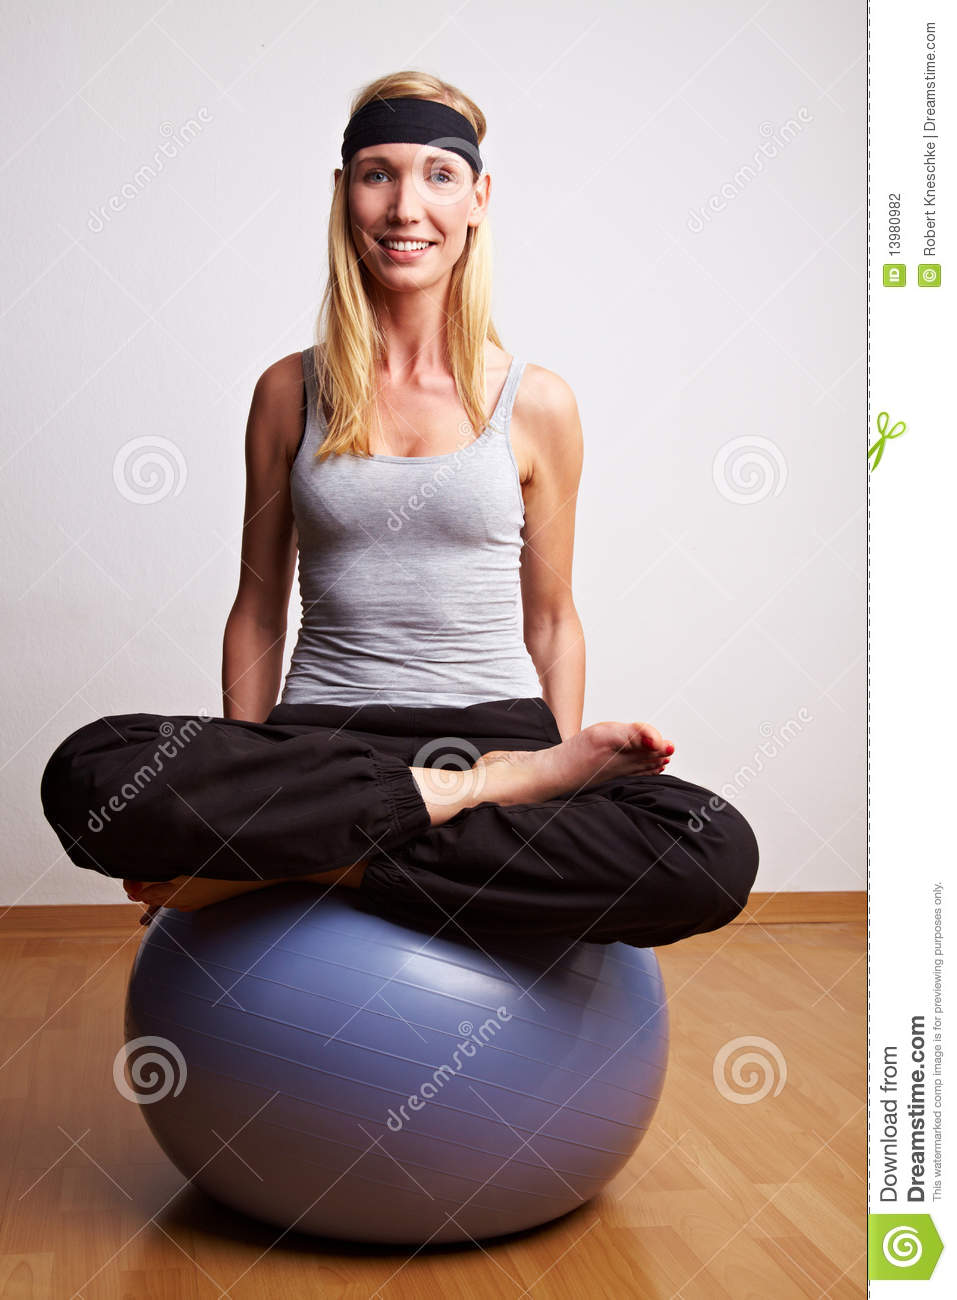 Woman In Tailor Seat On Gym Ball Stock Photography.